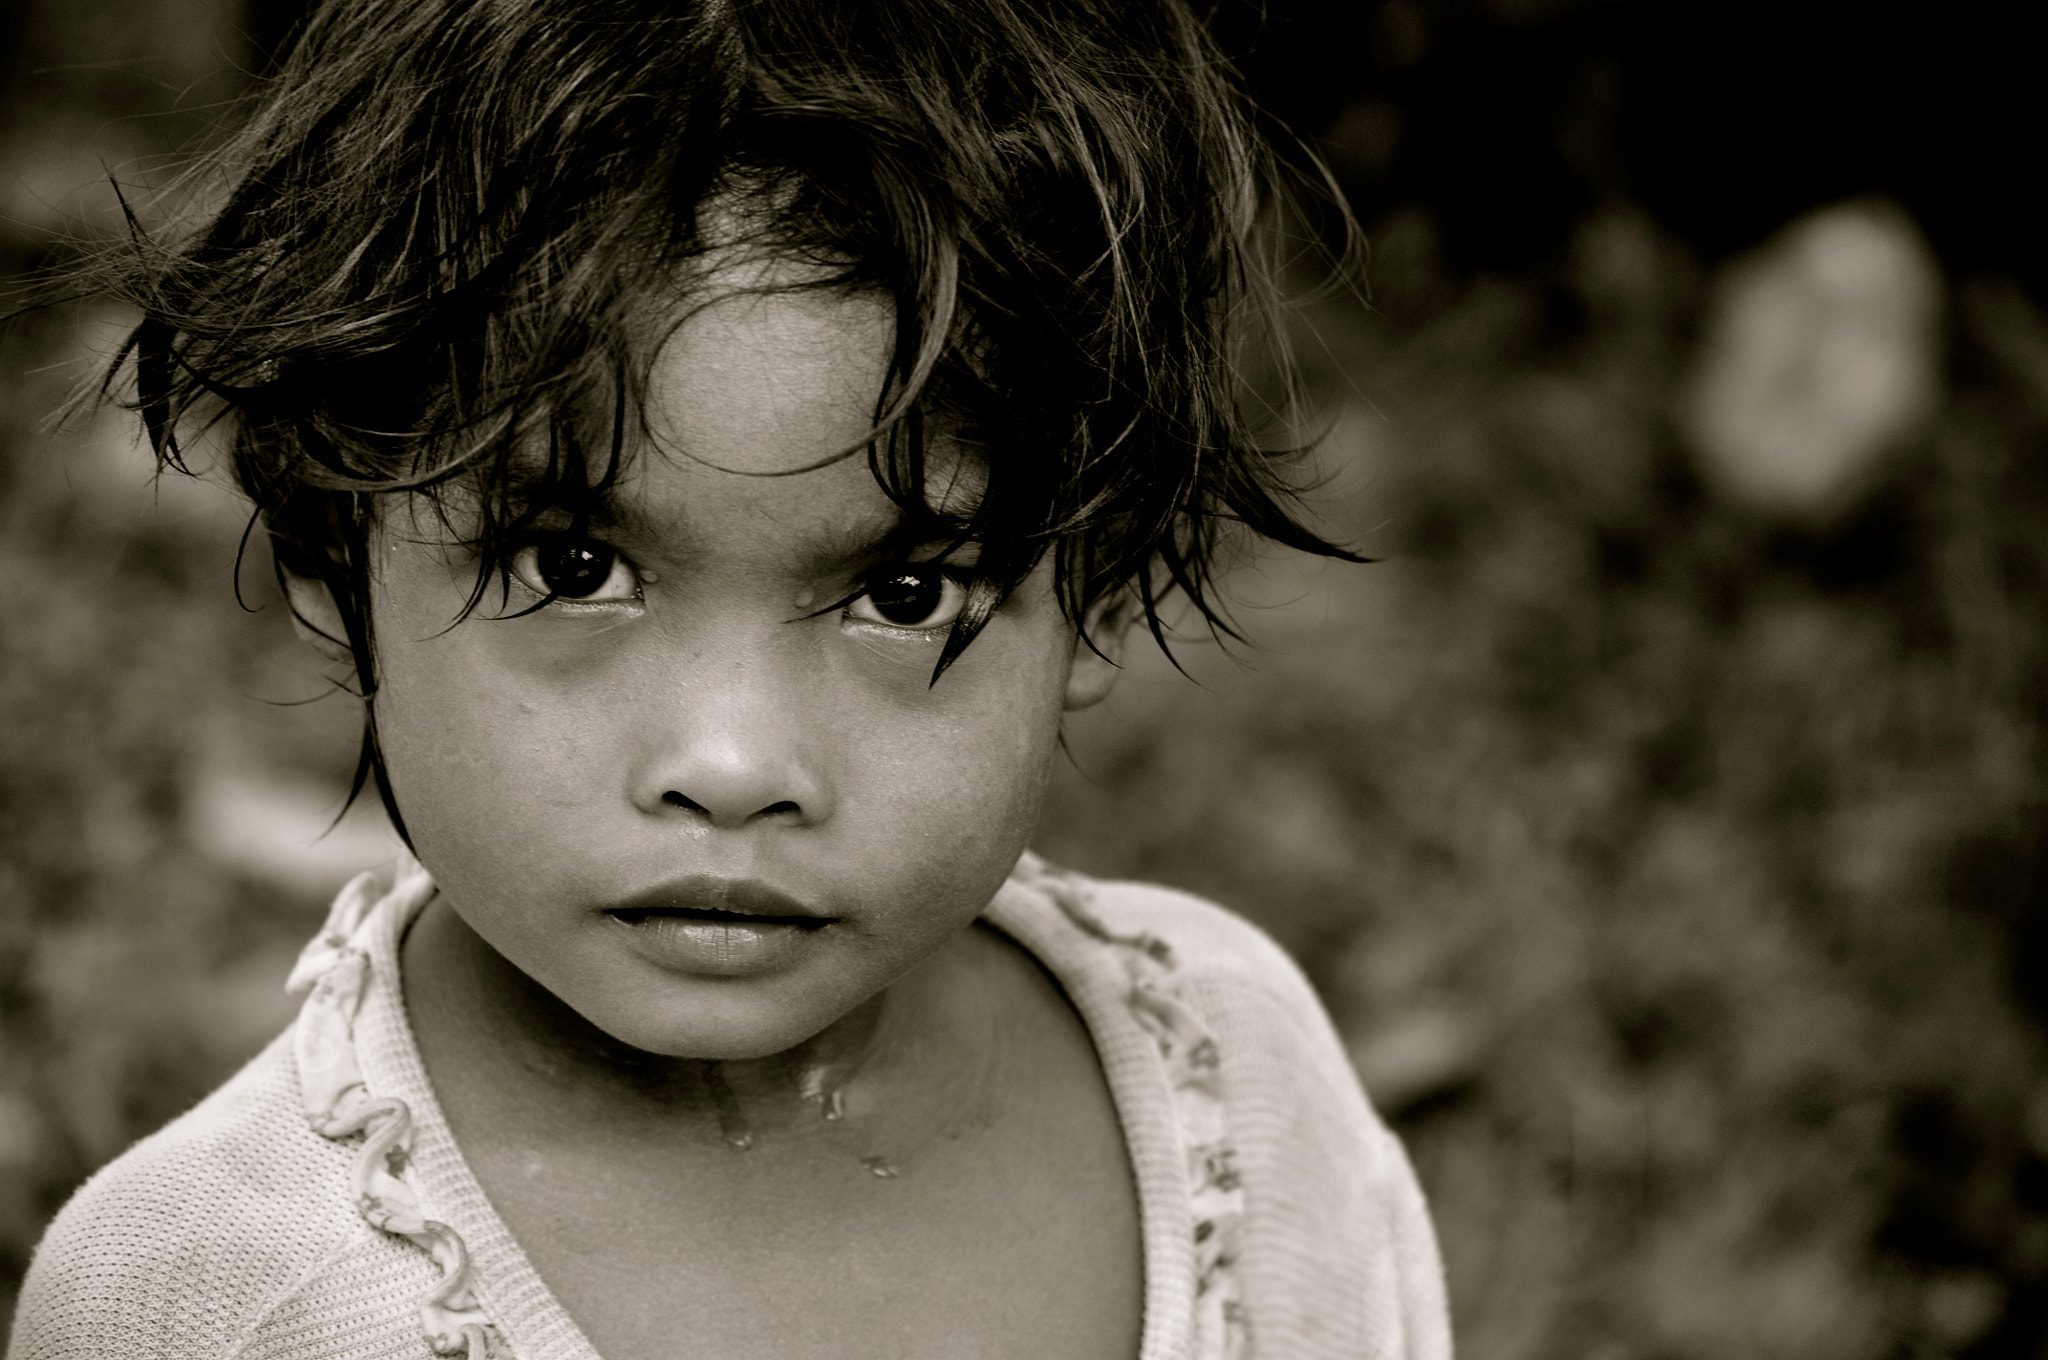 Photograph Filipino Girl by Kathrine Lorentzen on 500px